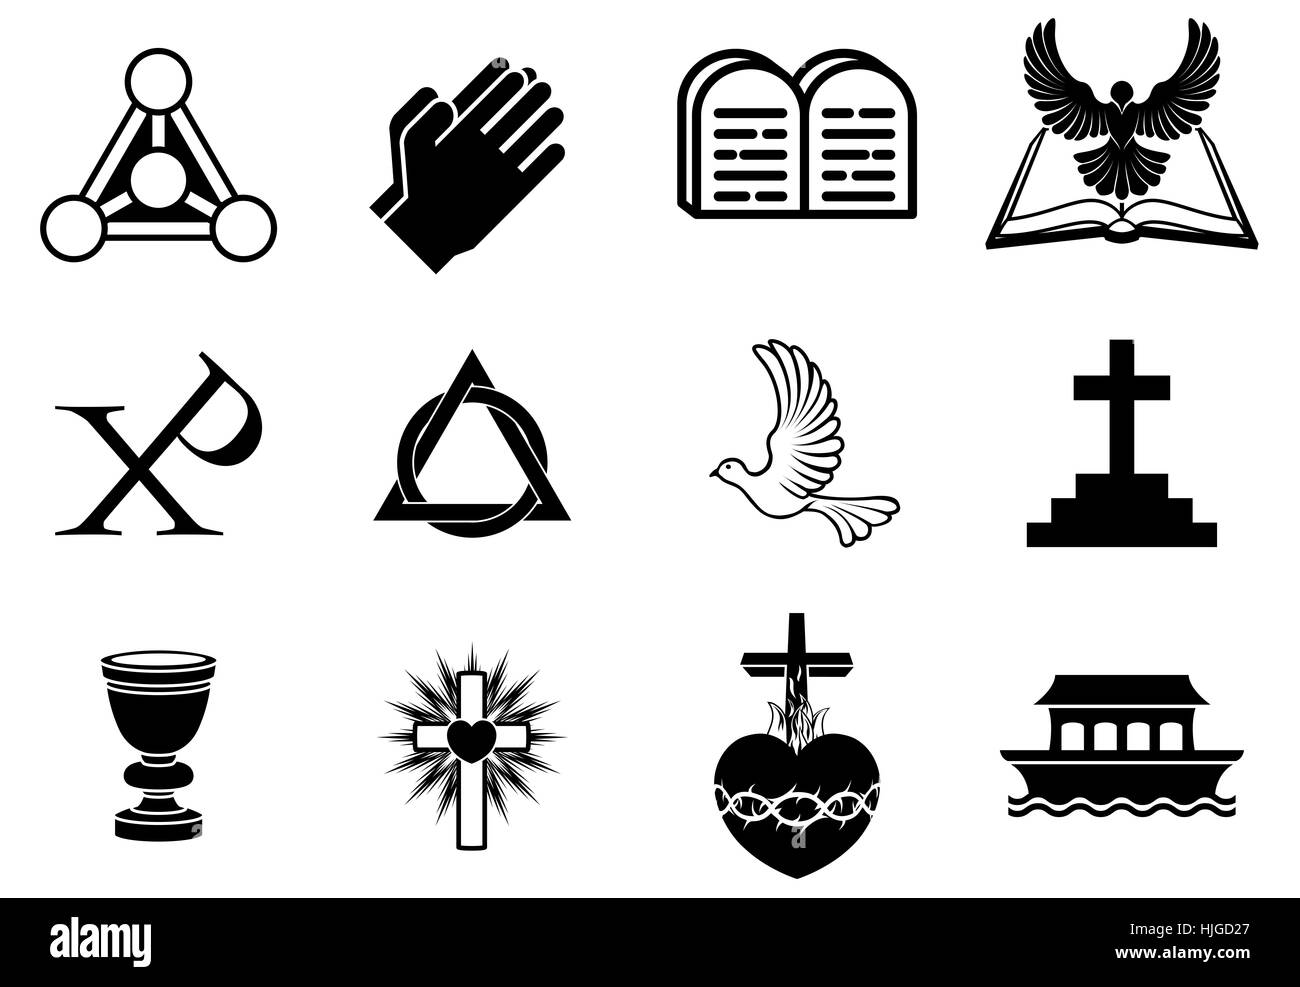 A set of Christianity icons and symbols, including dove, Chi Ro, praying hands, bible, trinity christogram, cross, - Stock Image